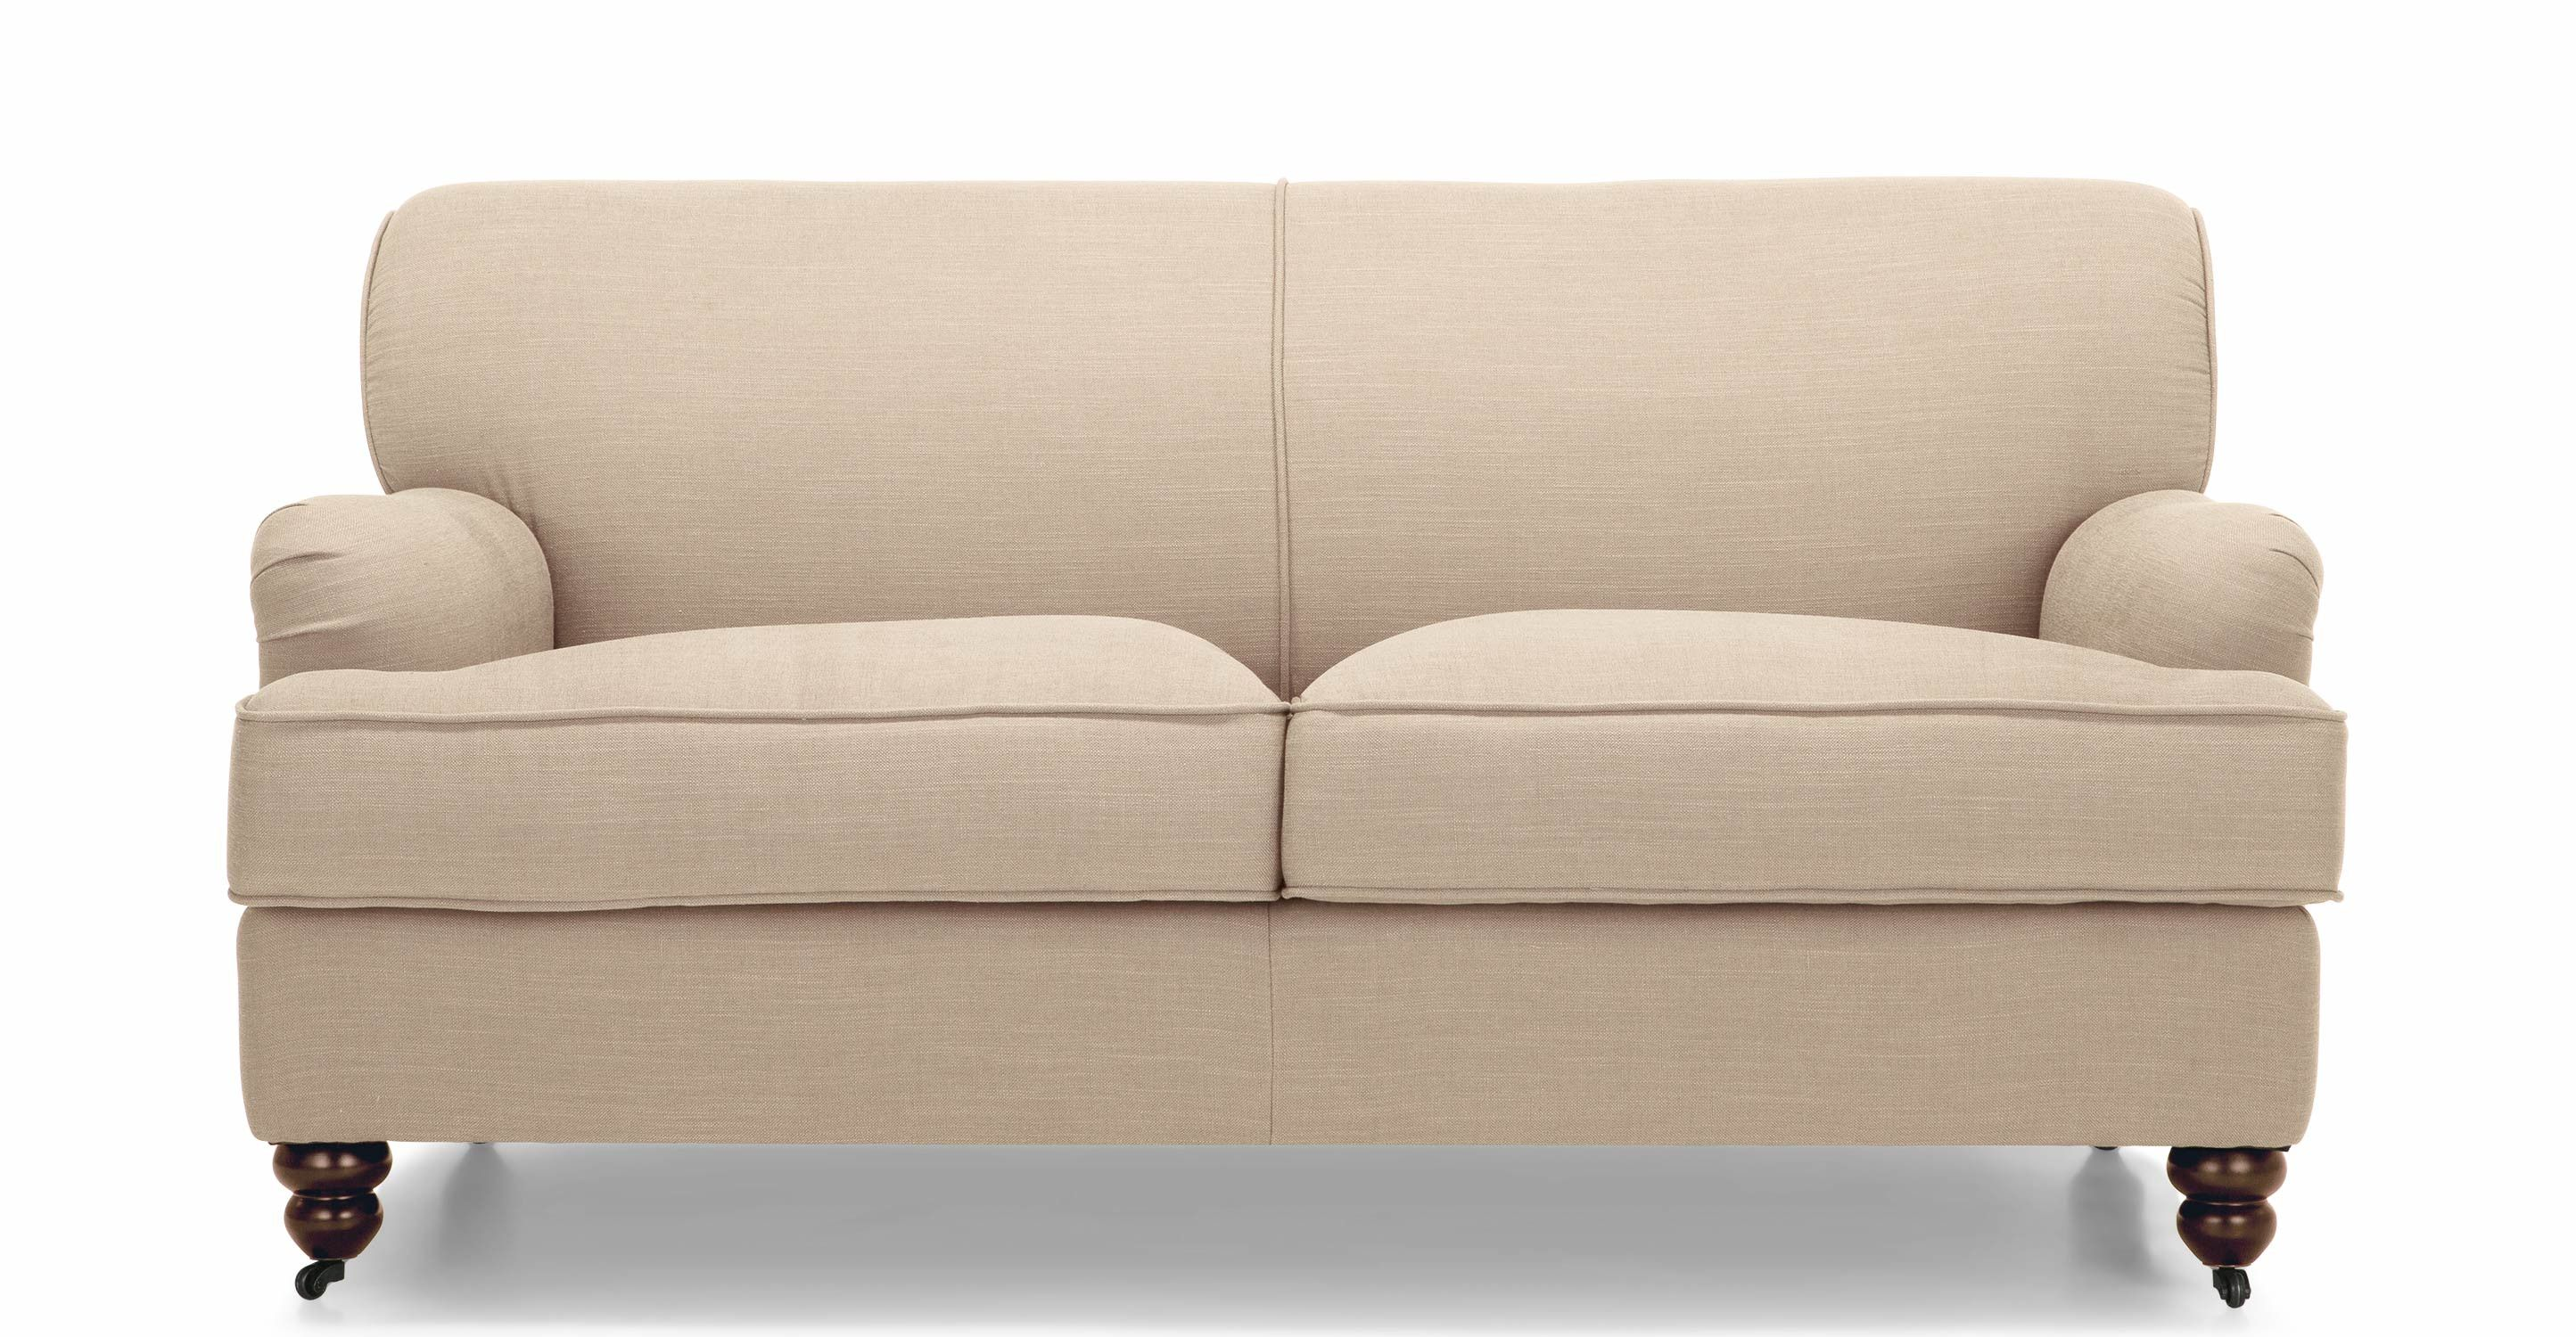 Orson 2 seater sofa, Biscuit Beige   Living spaces, Traditional and ...